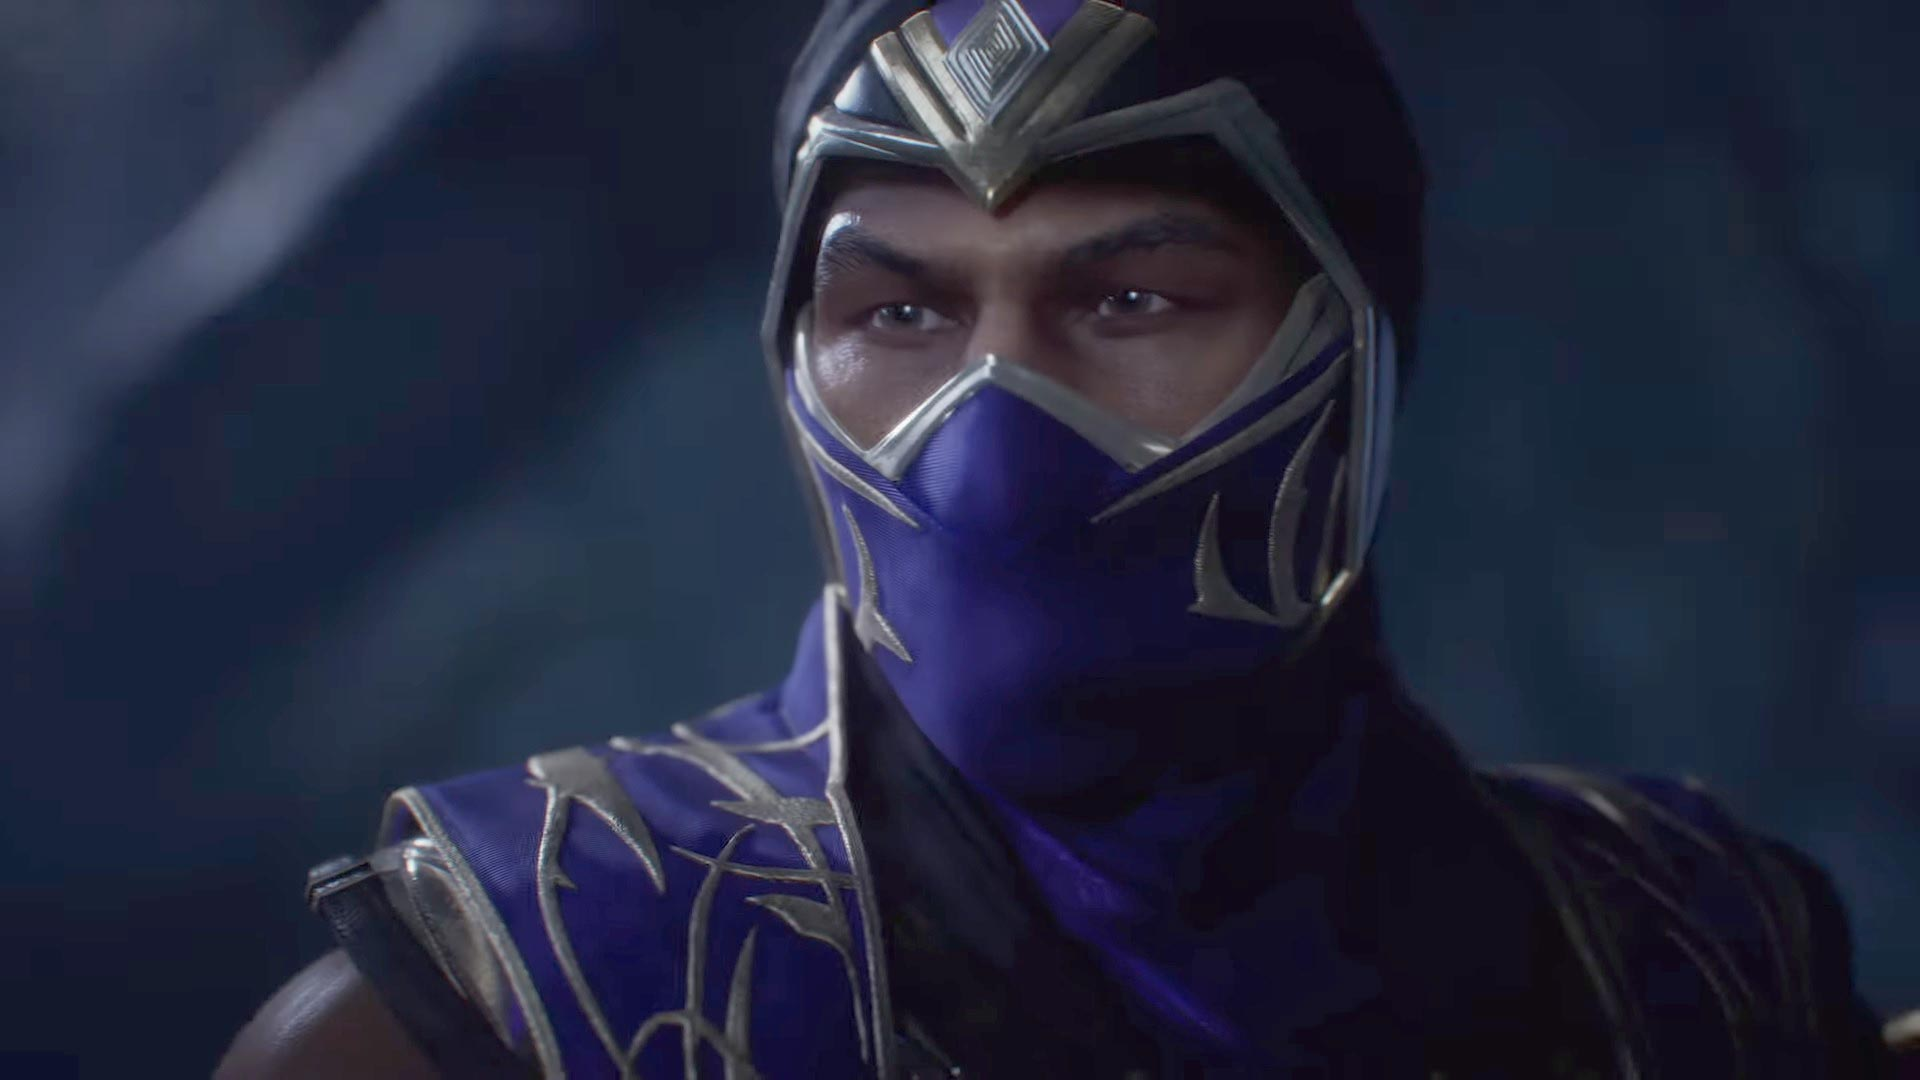 Mortal Kombat 11: Ultimate 1 out of 14 image gallery